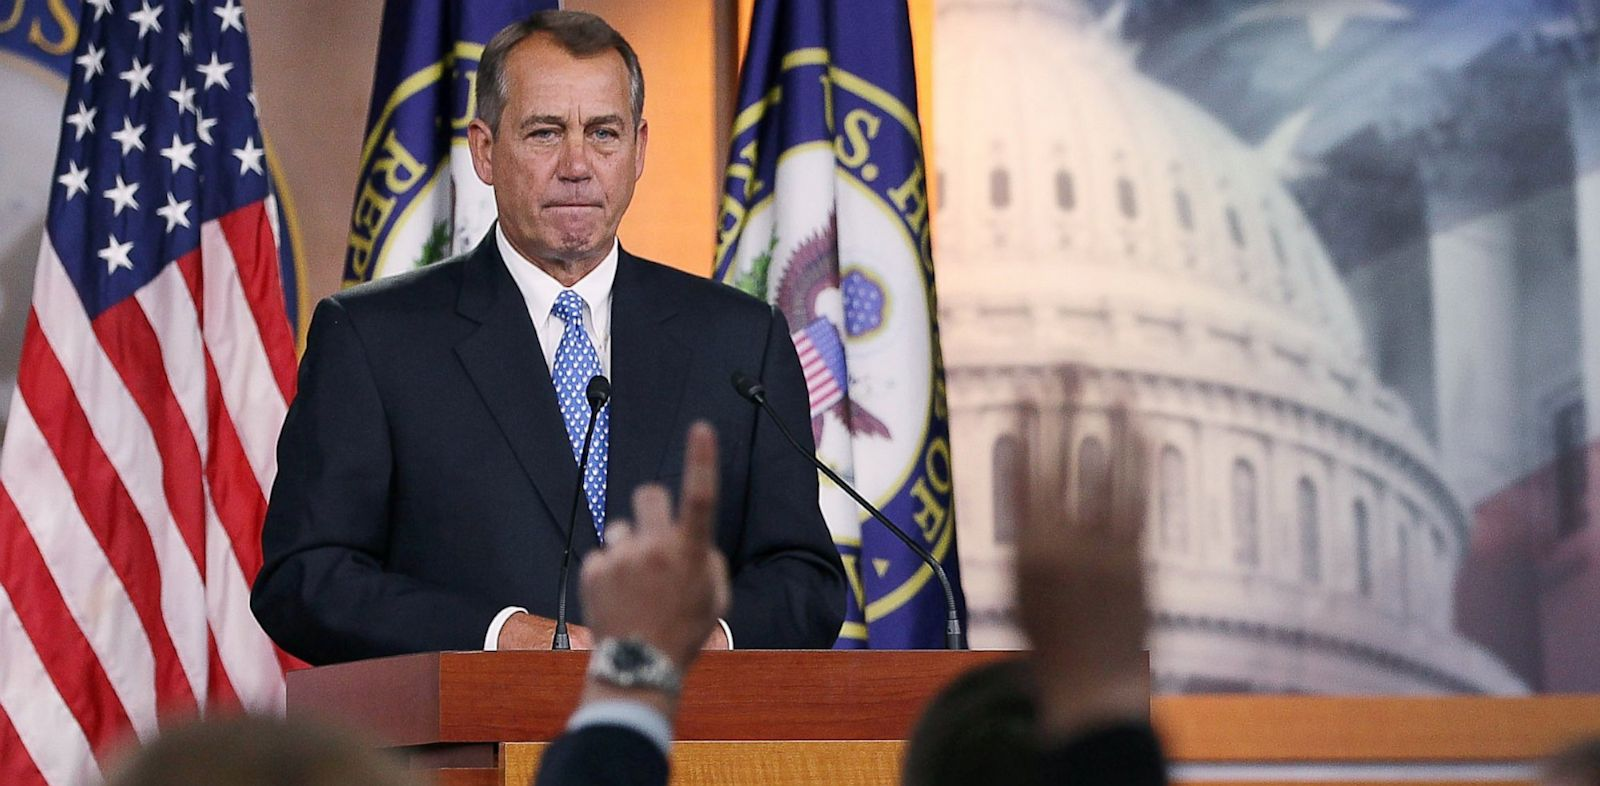 PHOTO: boehner, student loans, press conference